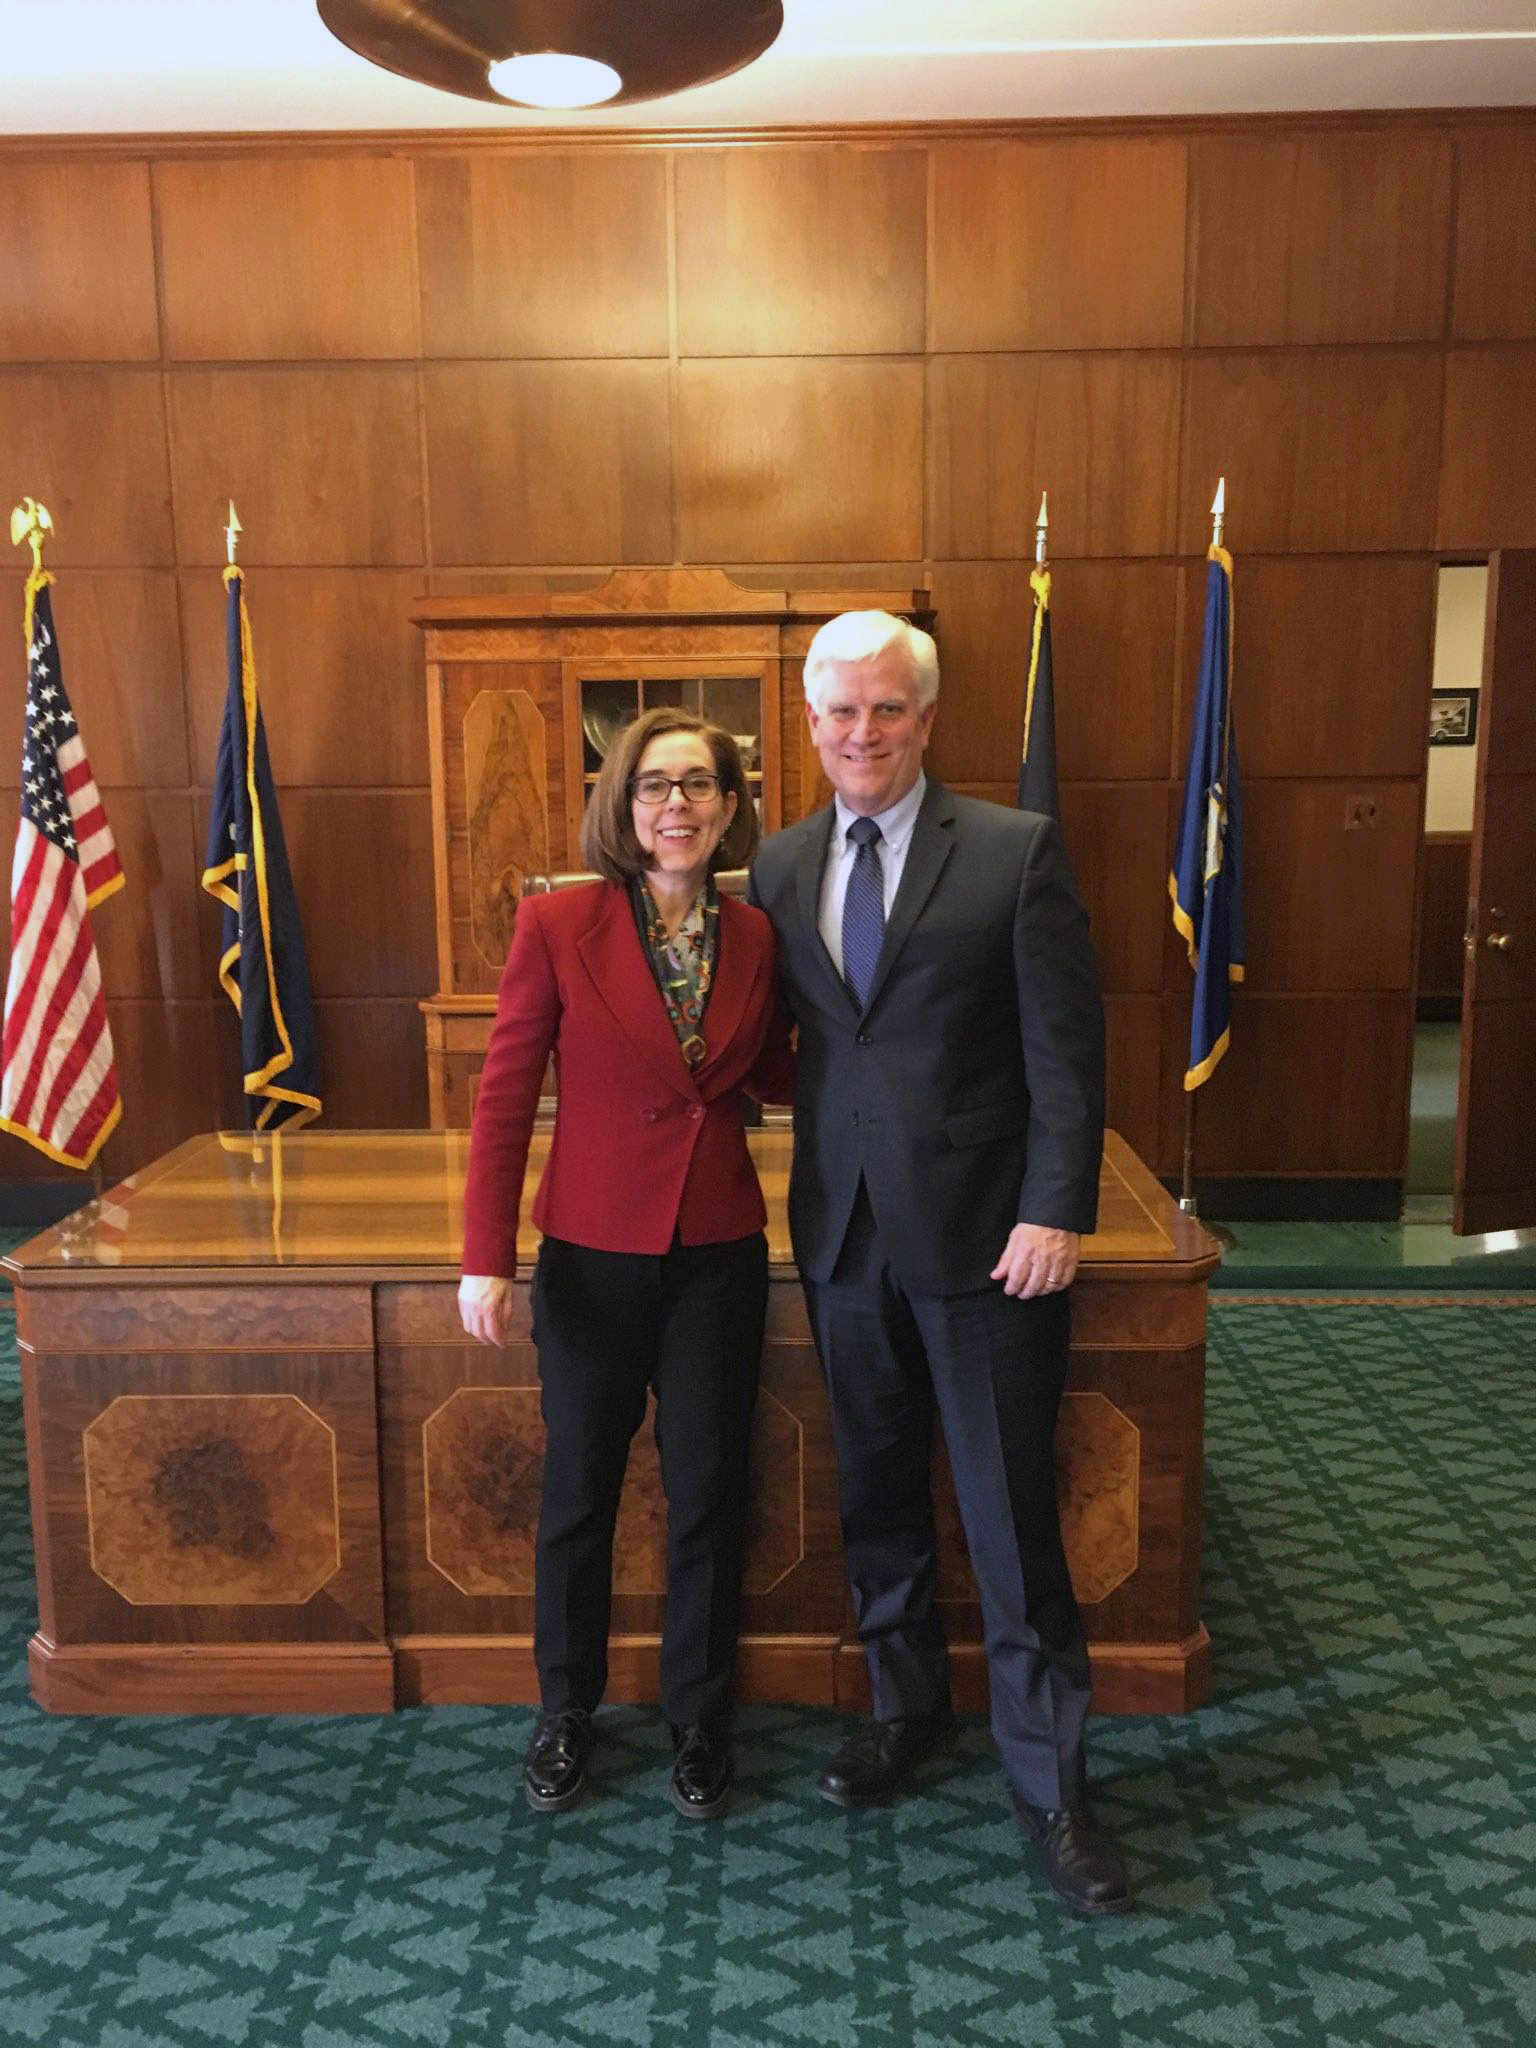 Rand O'Leary pictured here with Oregon Governor Kate Brown